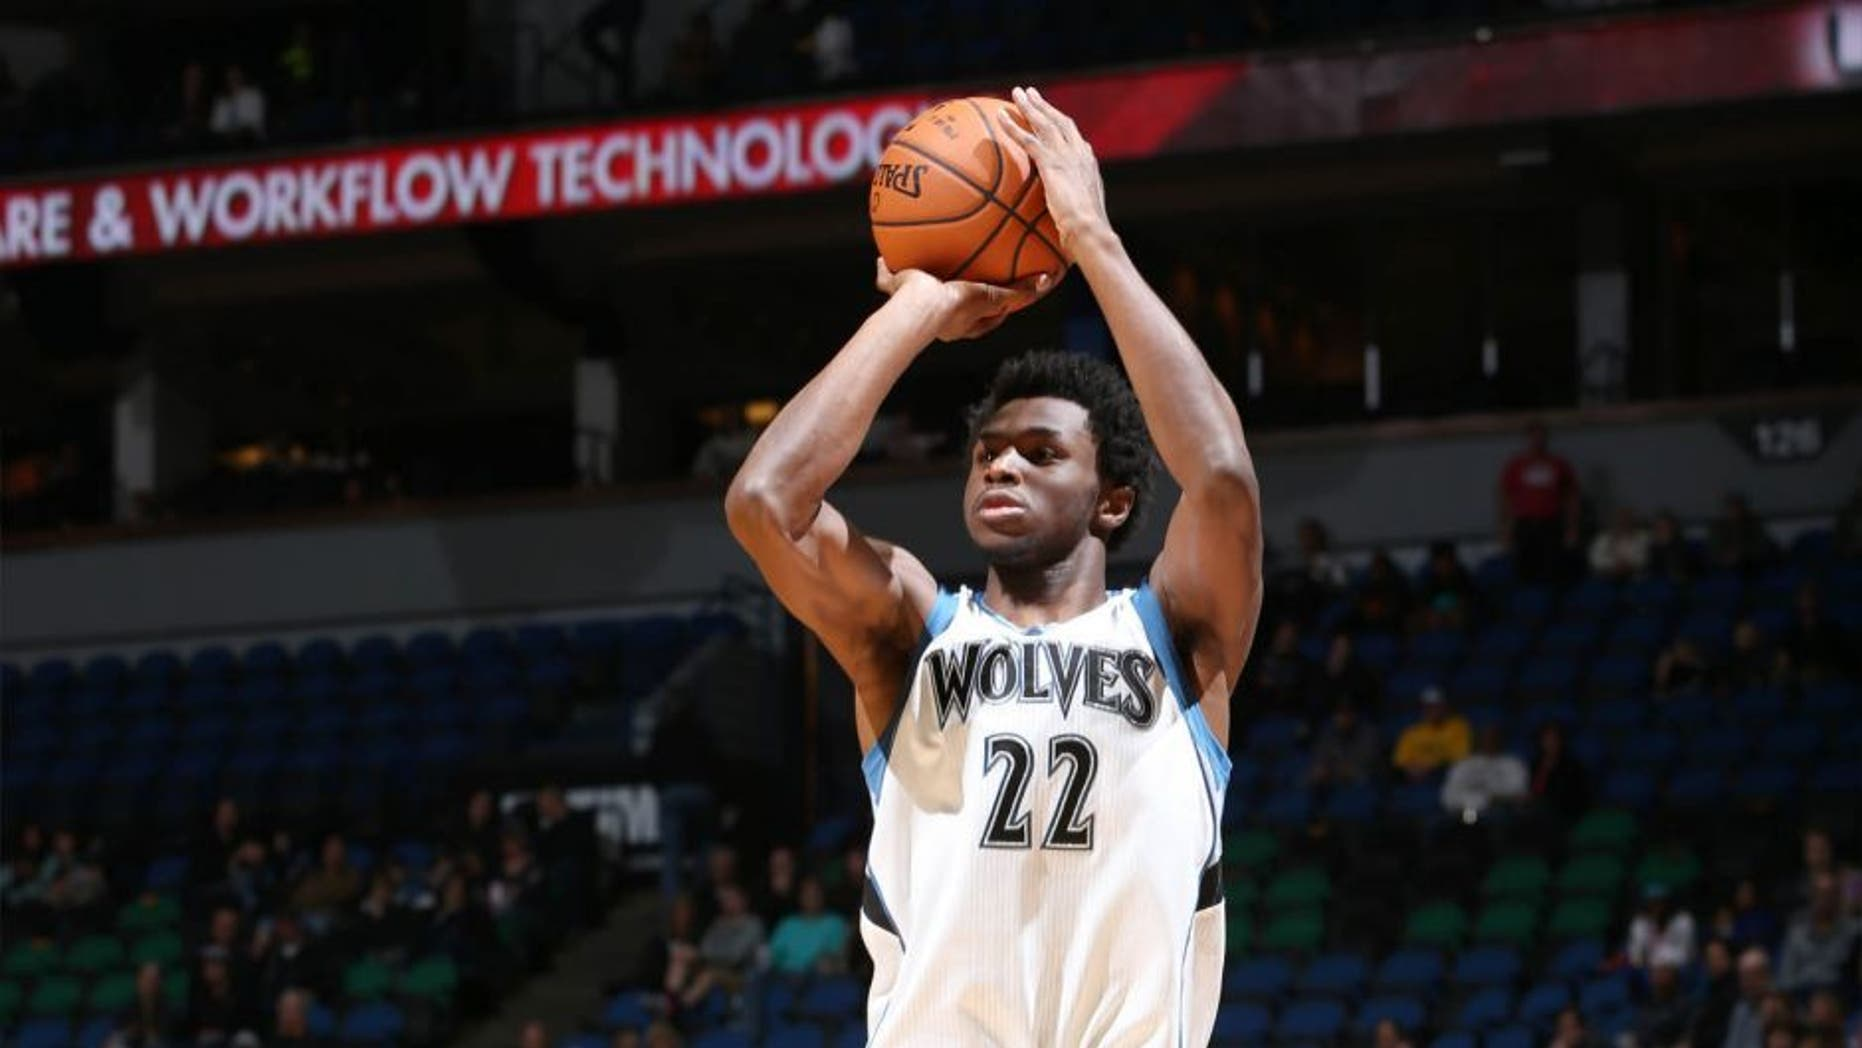 The Minnesota Timberwolves' Andrew Wiggins shoots the ball against the Milwaukee Bucks during a preseason game on Oct. 23, 2015 at Target Center in Minneapolis.